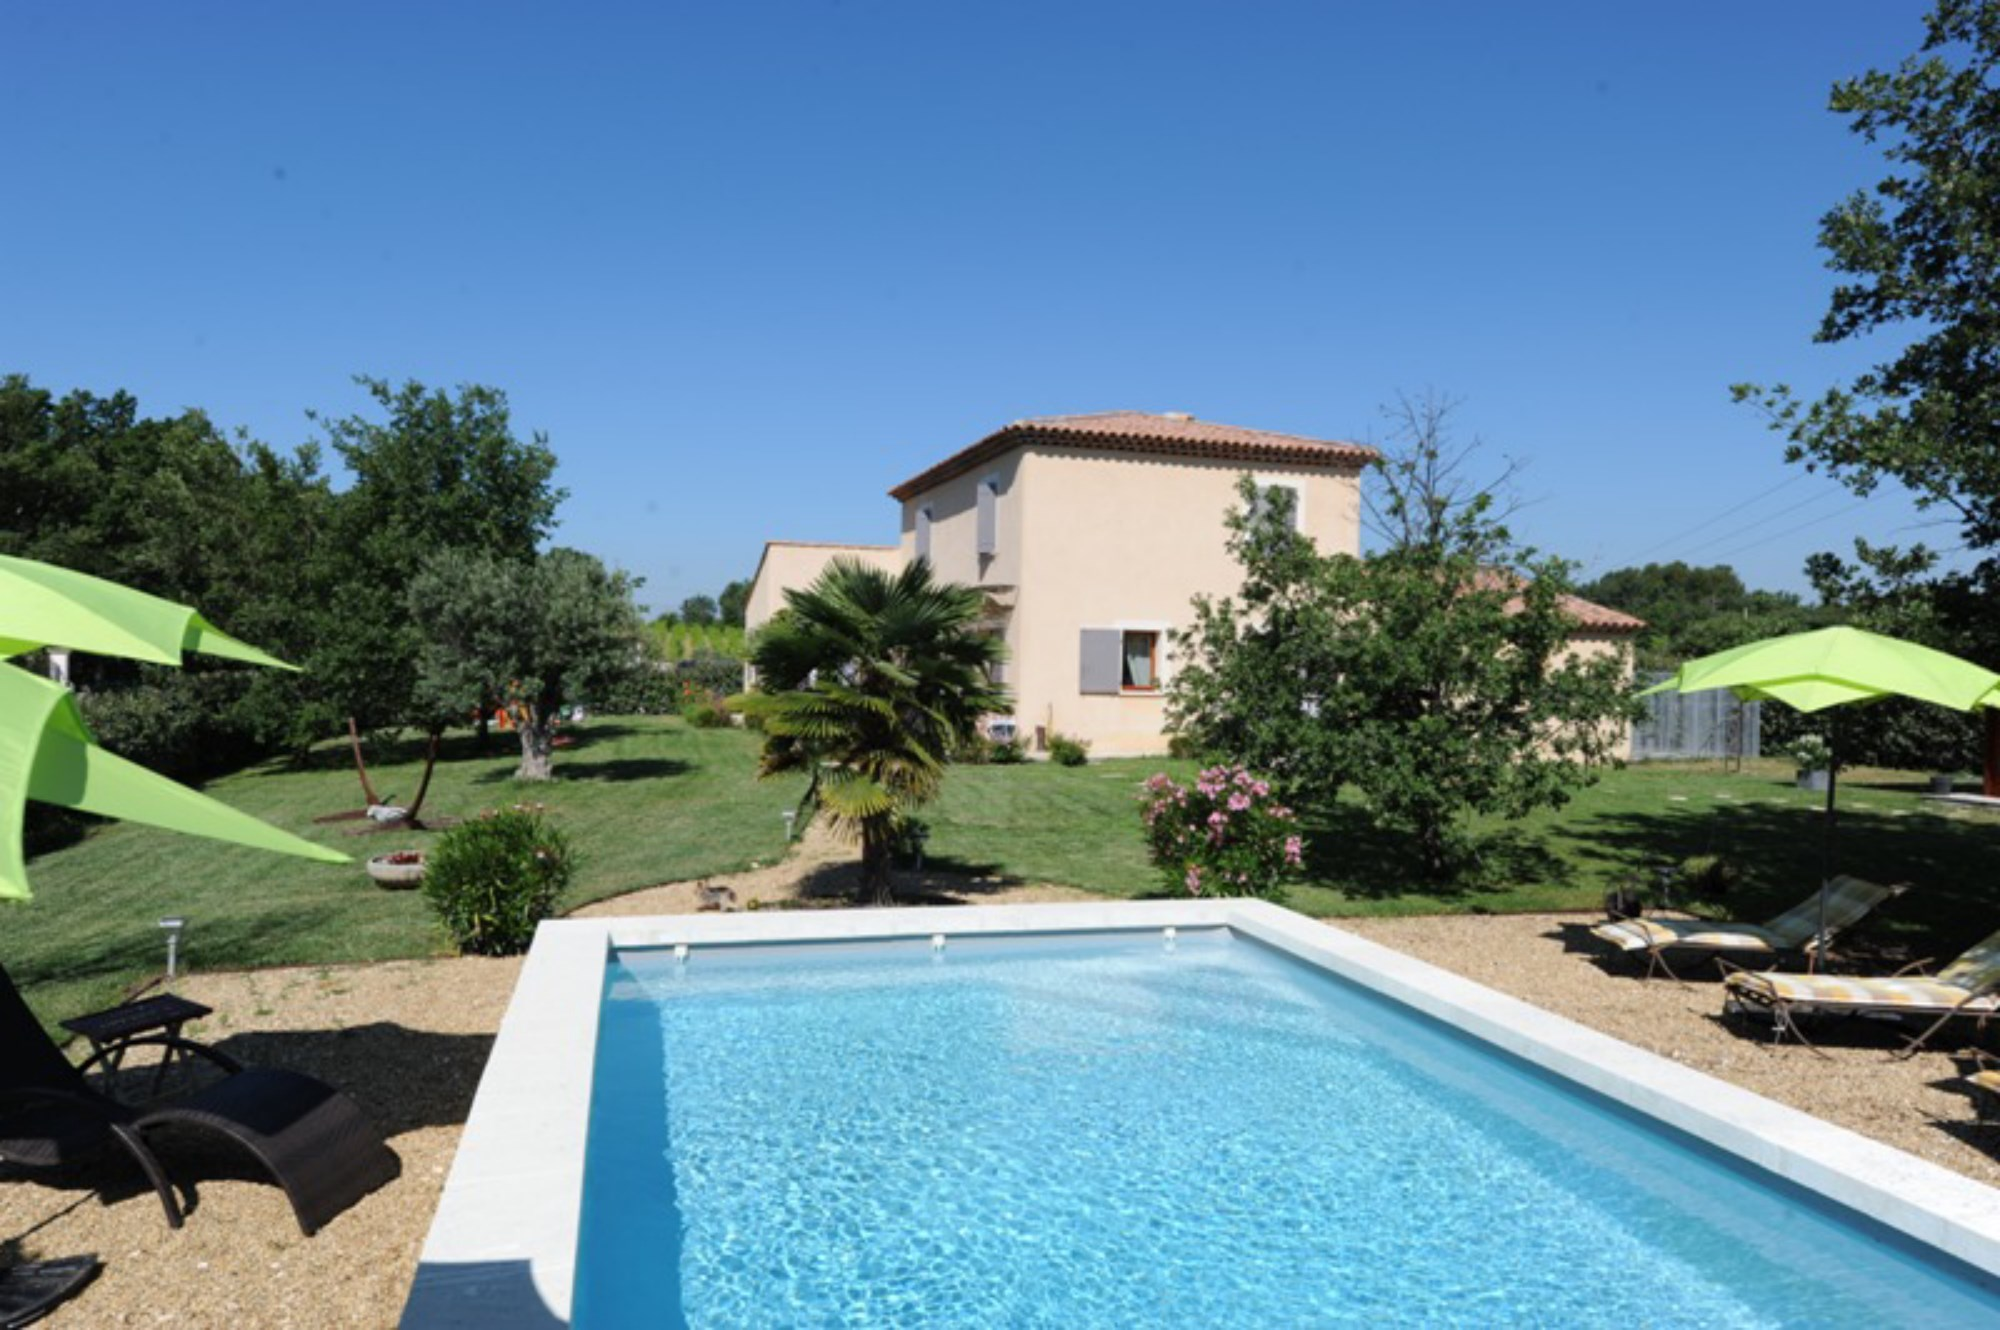 Ventes a vendre pr s d 39 un beau village perch villa for Jardin contemporain avec piscine